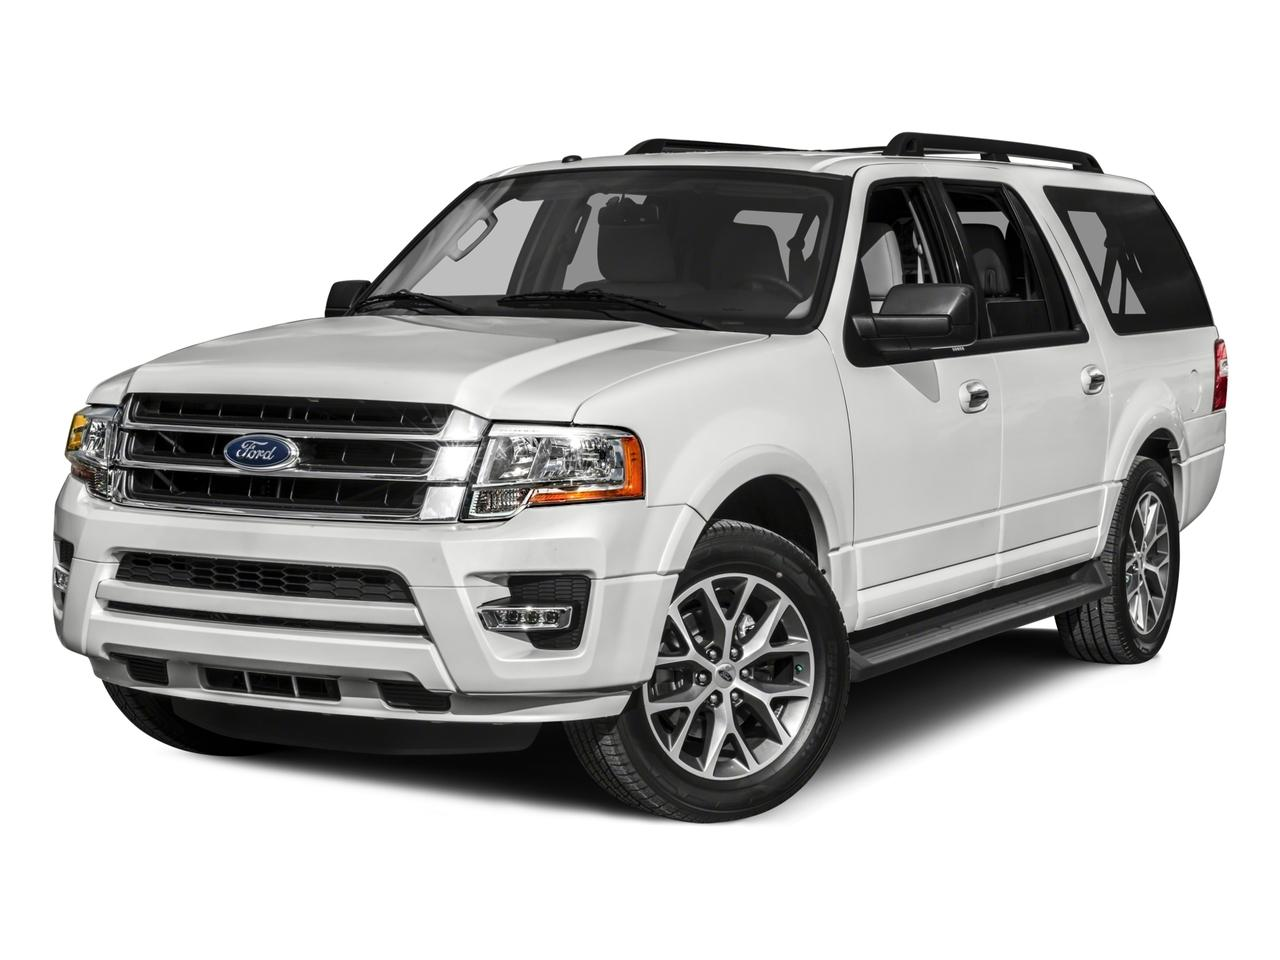 2015 Ford Expedition EL Vehicle Photo in APPLETON, WI 54914-8833